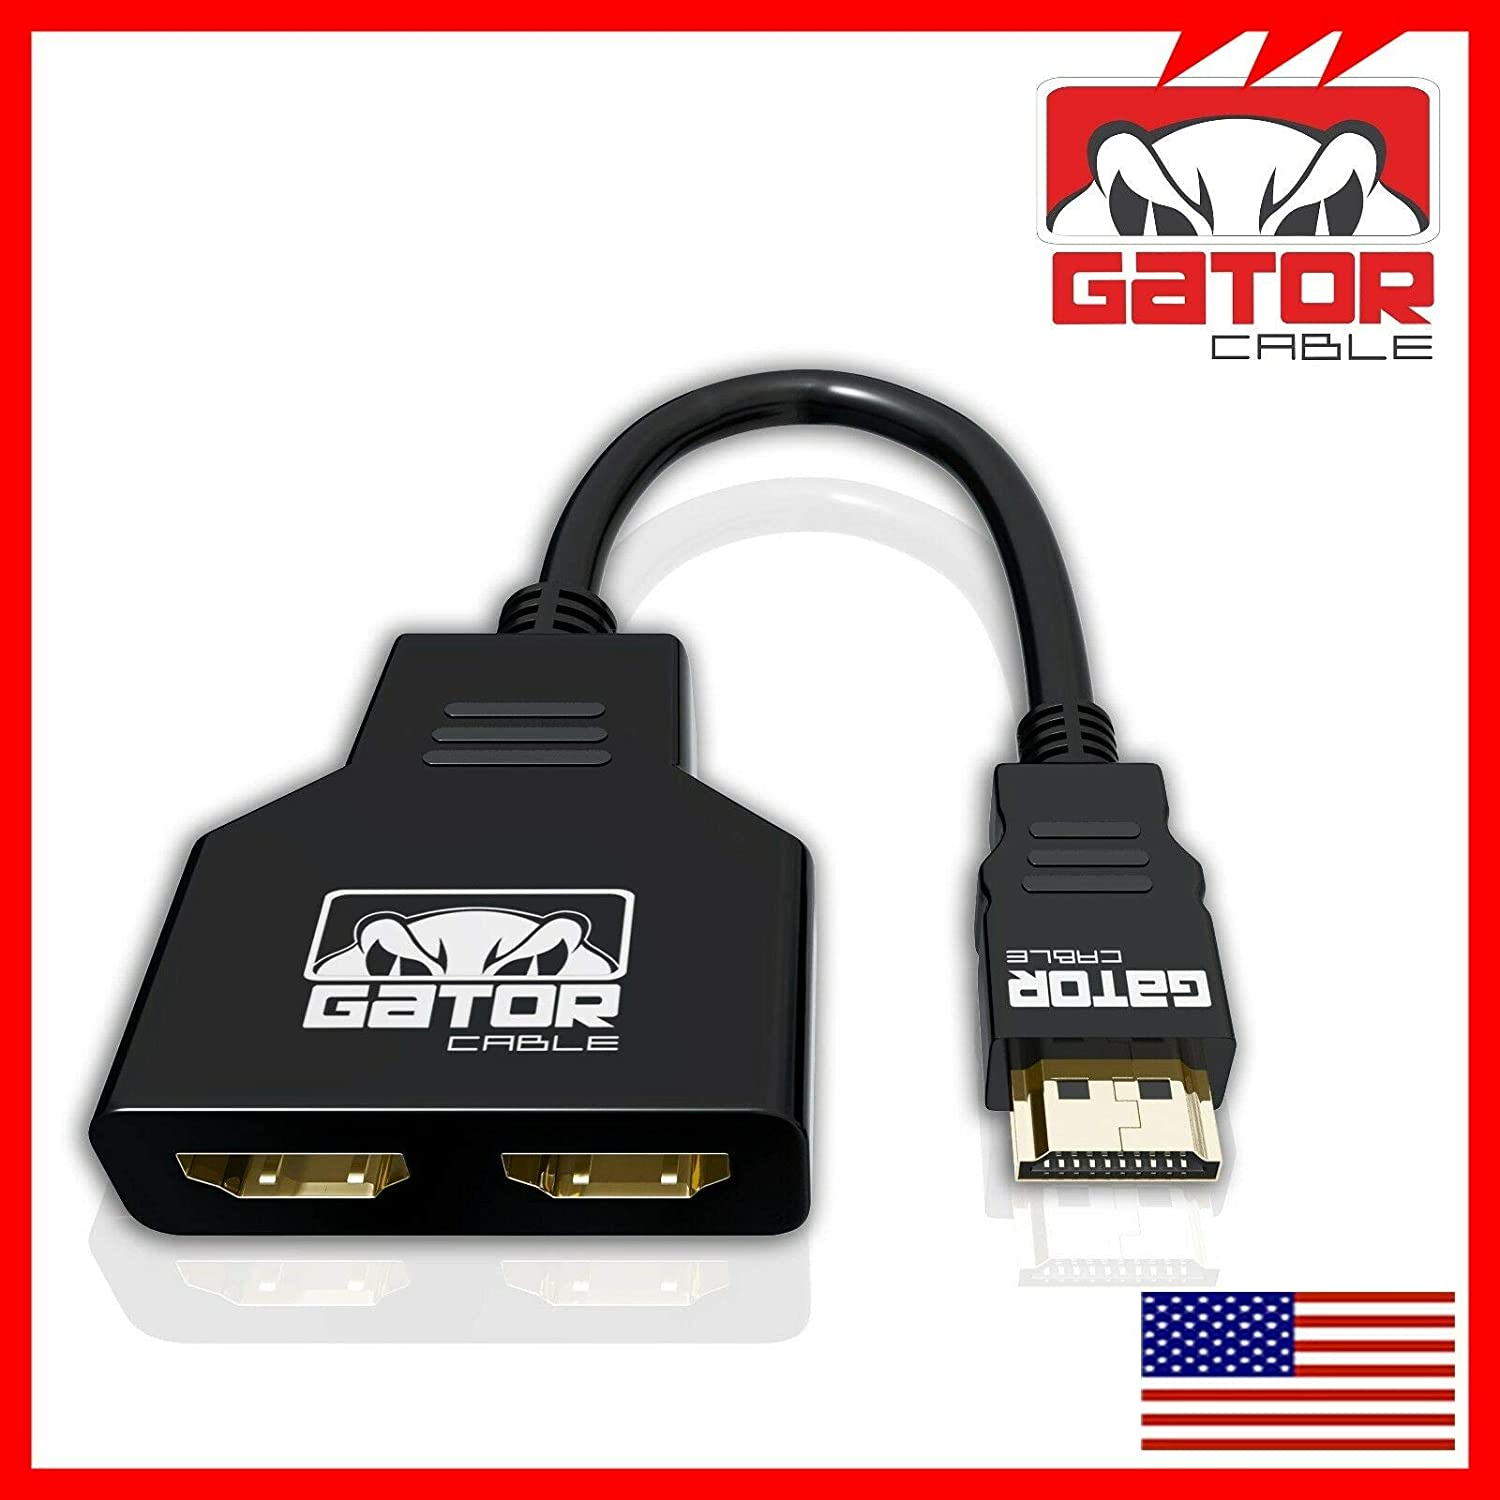 4K HDMI 2.0 Cable Splitter Adapter Converter 1 in 2 Out HDMI Male to 2 HDMI UHD